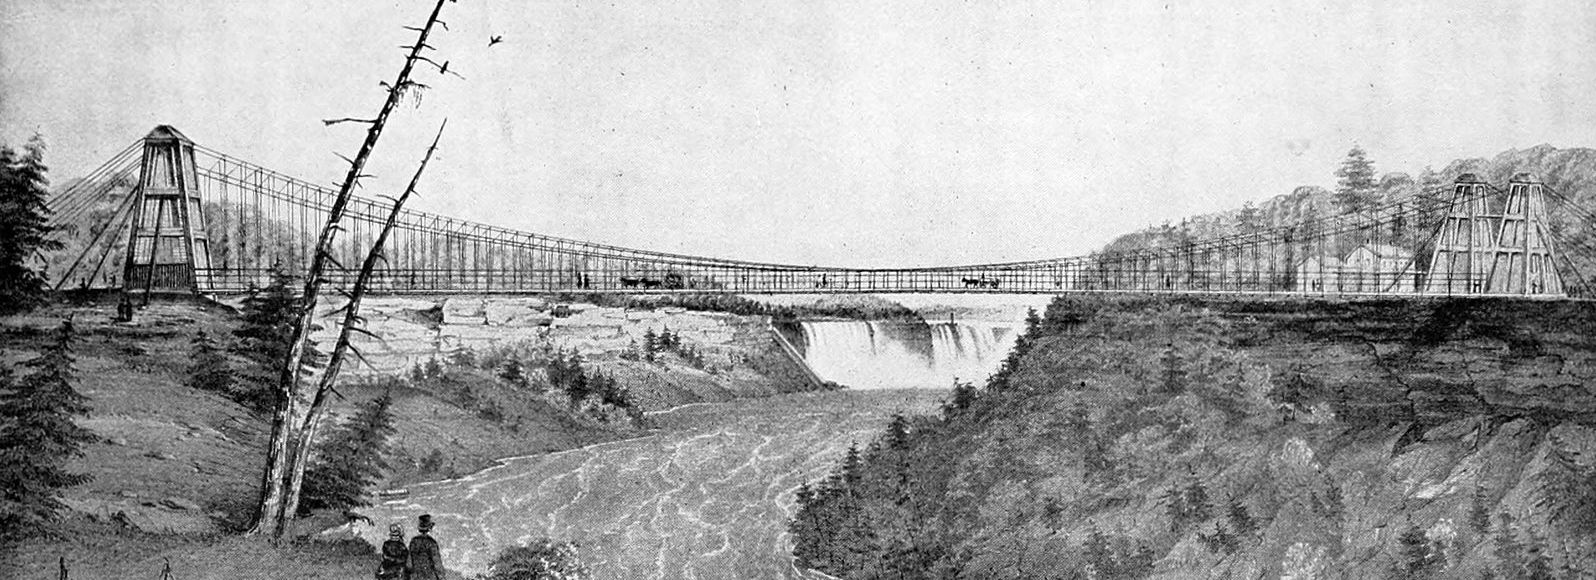 The Niagara Falls Supension Bridge Programming Analogy